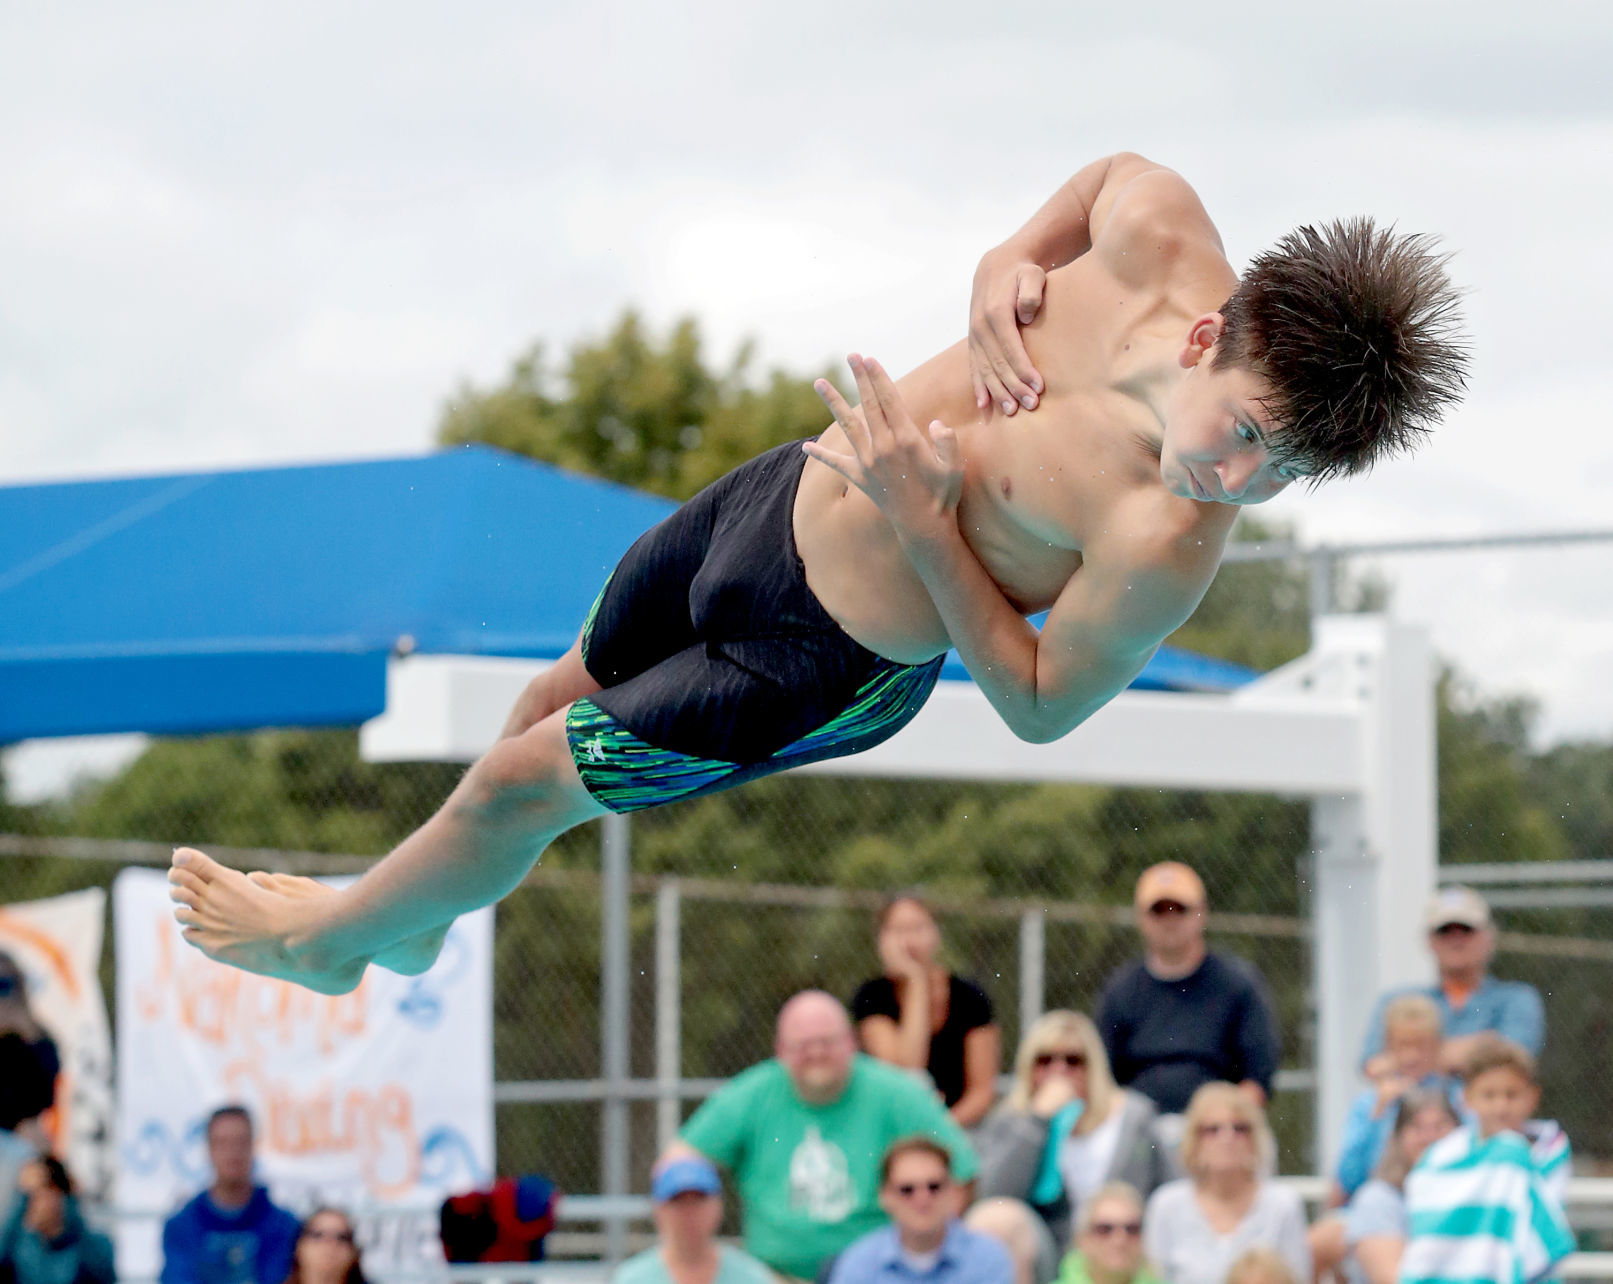 Prep boys diving photo: Madison Edgewood's Ben Stitgen